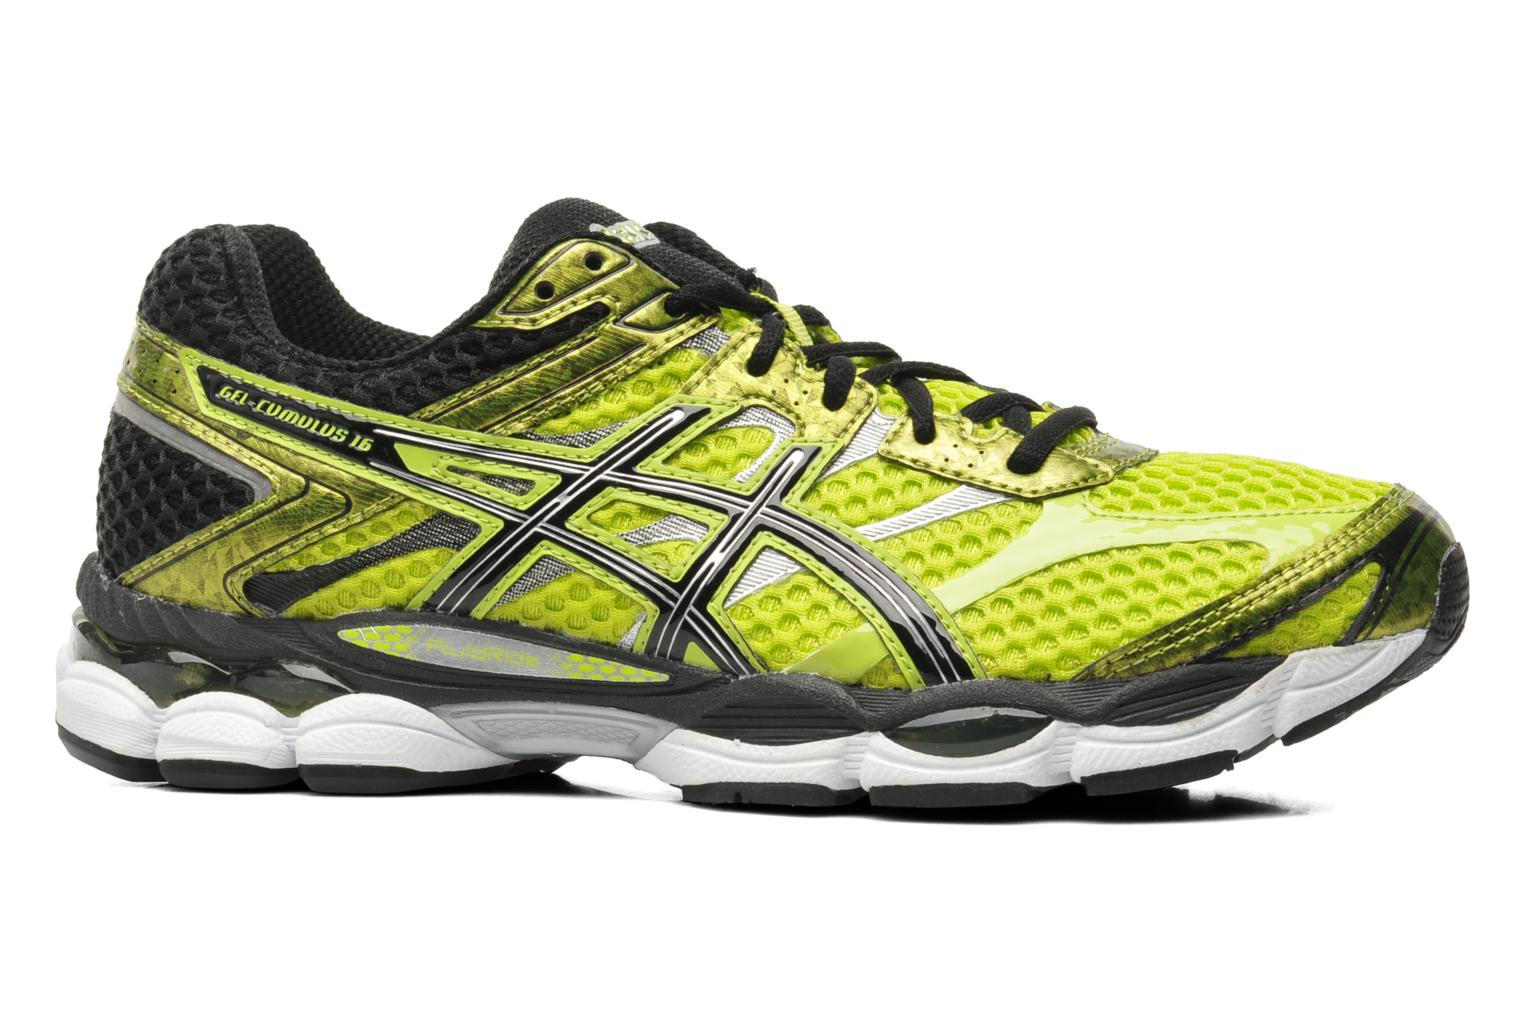 asics gel cumulus 16 sport shoes in yellow at 191104. Black Bedroom Furniture Sets. Home Design Ideas